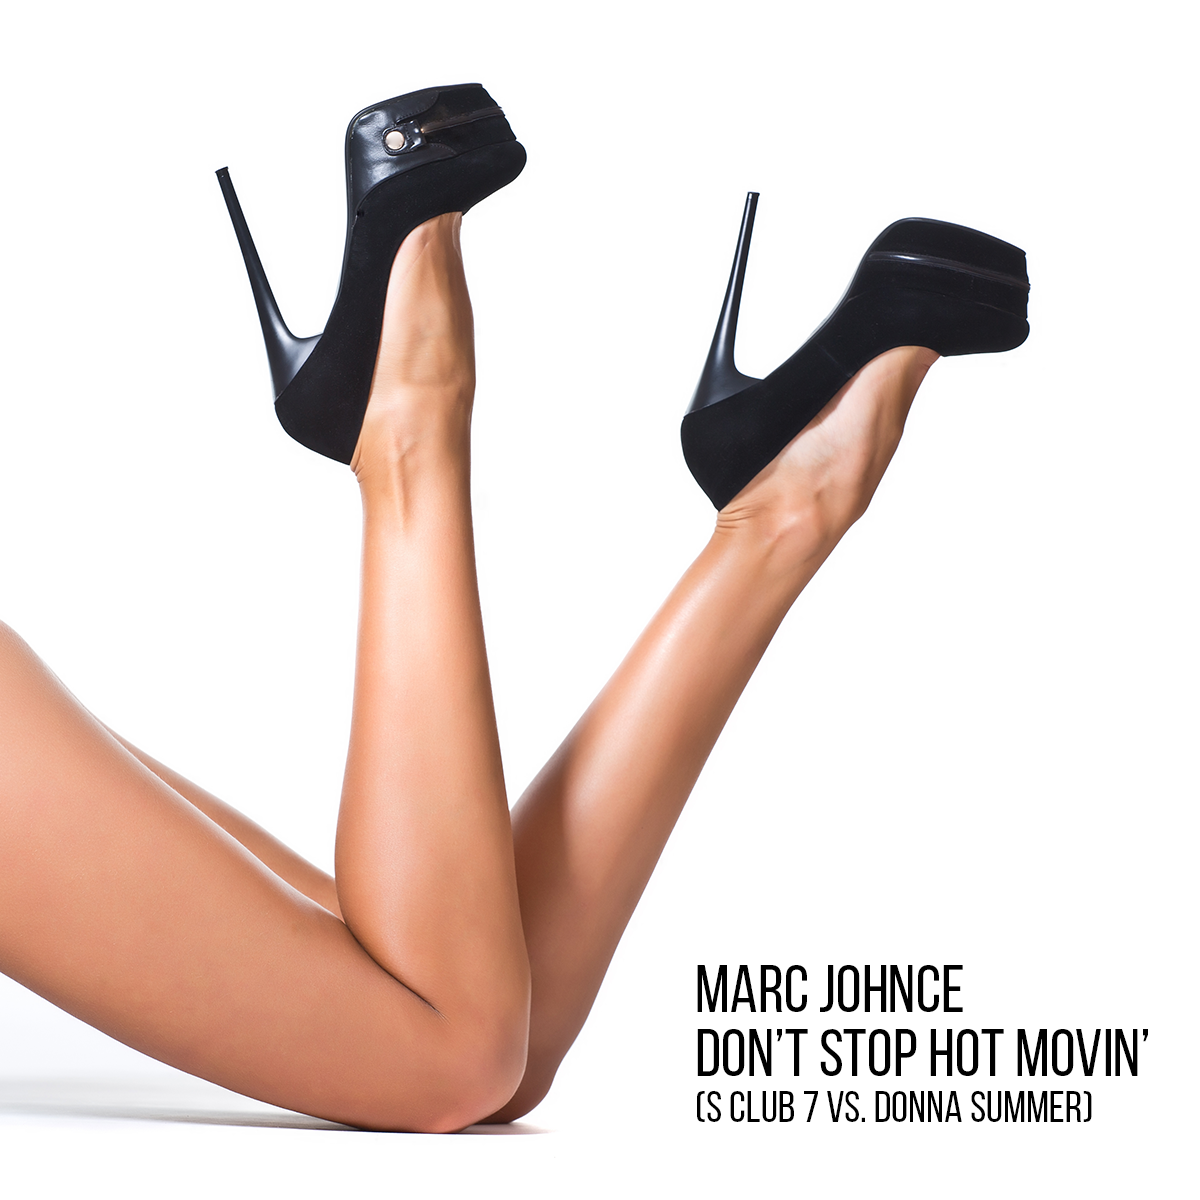 Marc Johnce - Don't Stop Hot Movin'